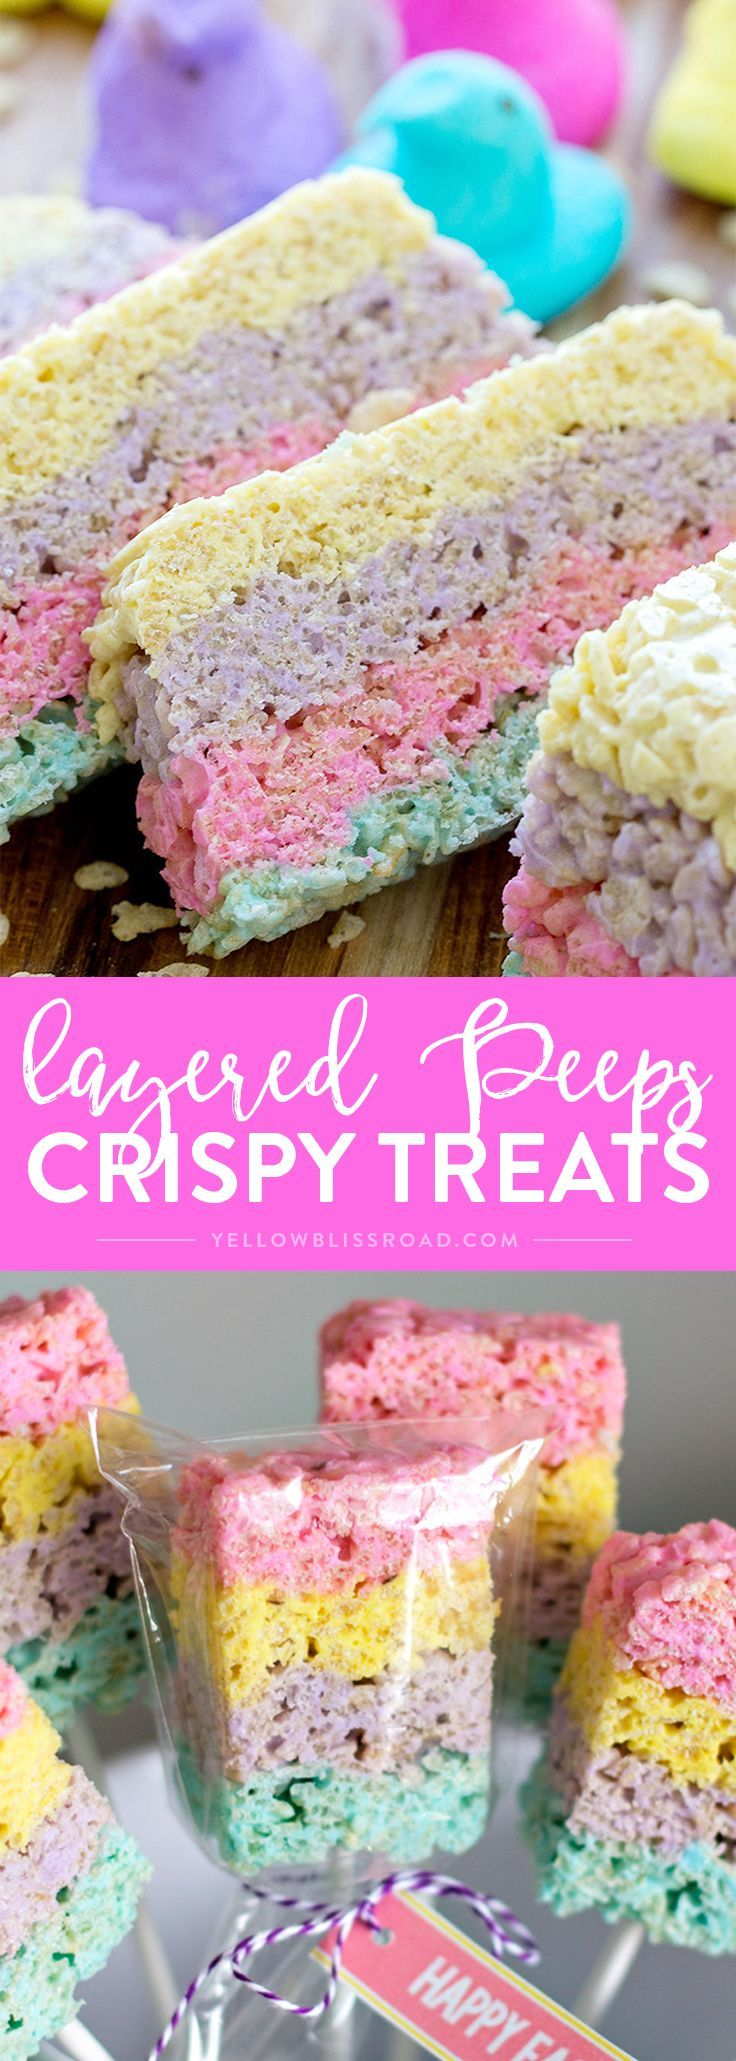 Rice Krispie Treats with a twist - they are made with marshmallow Peeps and layered for a beautiful, colorful Easter treat! An Easter dessert that is fun, easy and delicious. #RiceKrispies #EasterDessert #easter #eastertreats